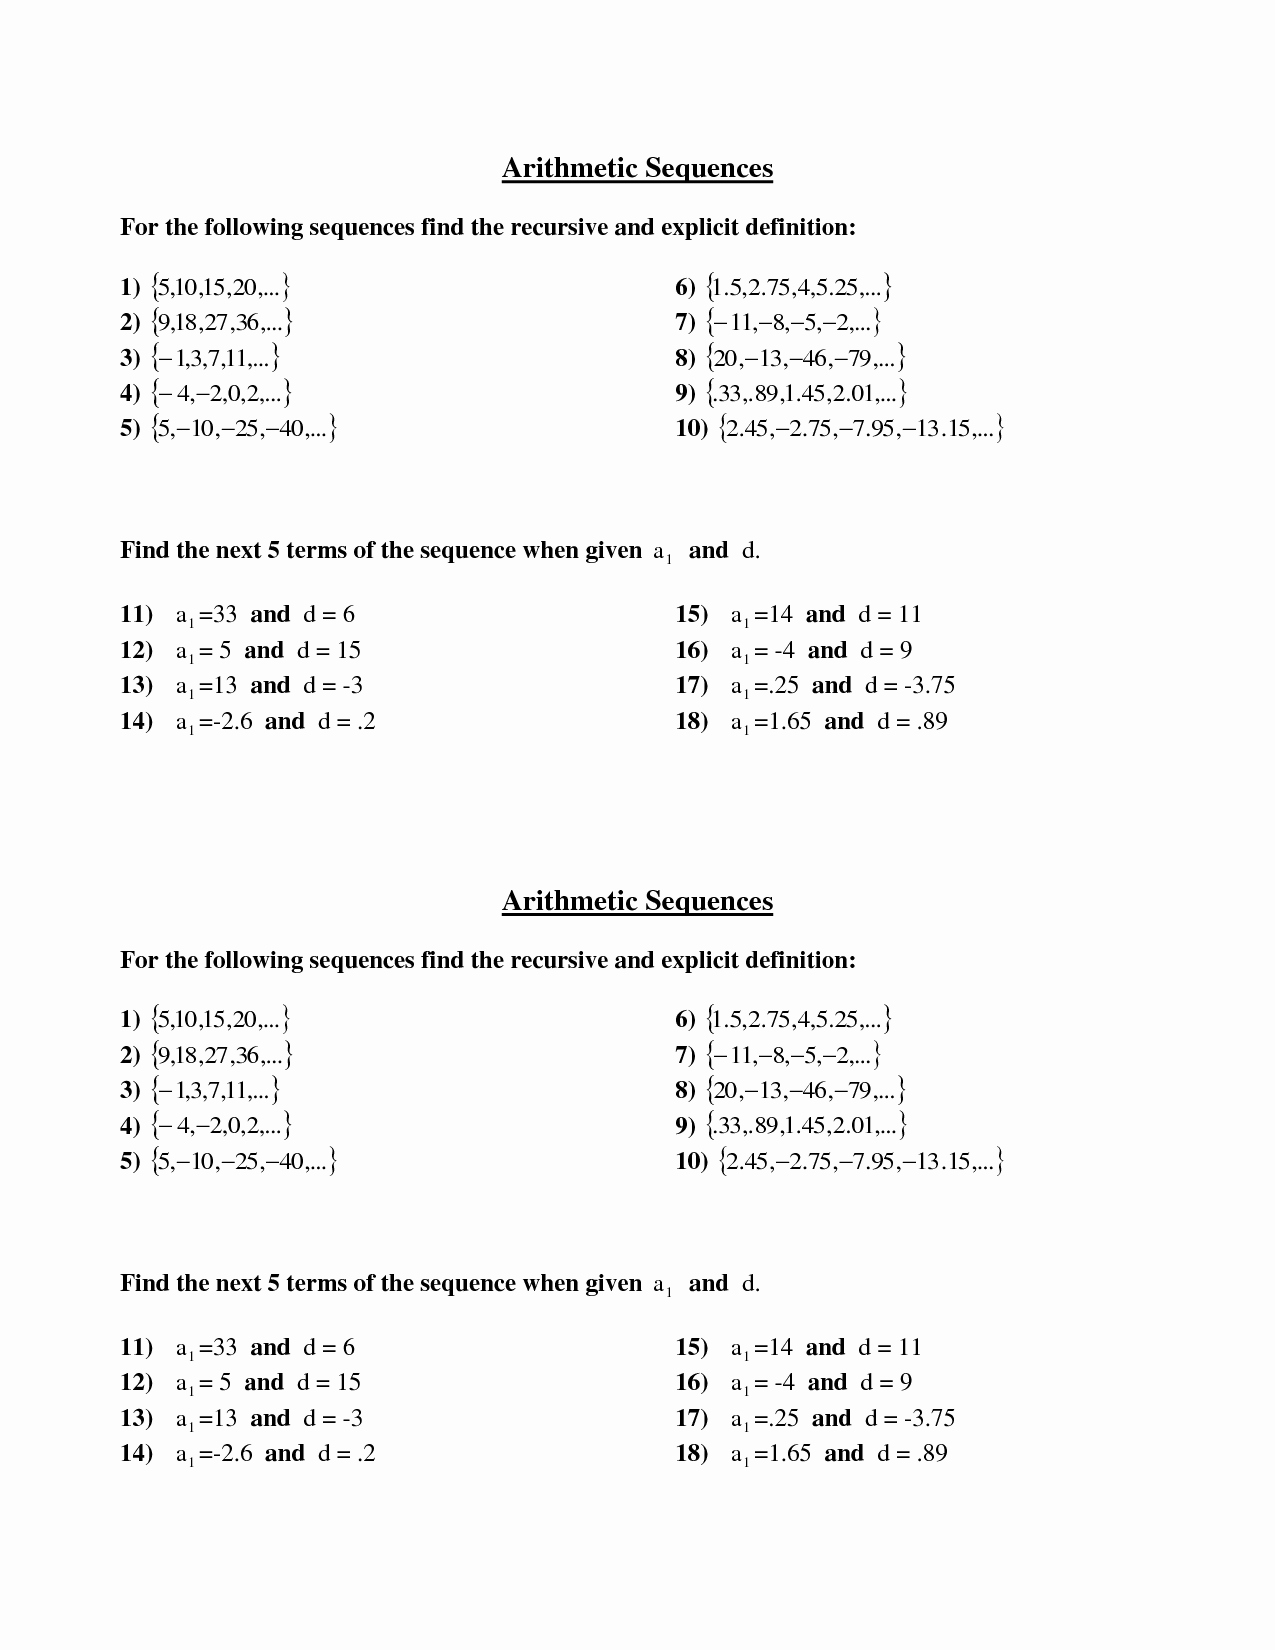 Arithmetic Sequences and Series Worksheet New 51 Arithmetic Sequences and Series Worksheet Arithmetic